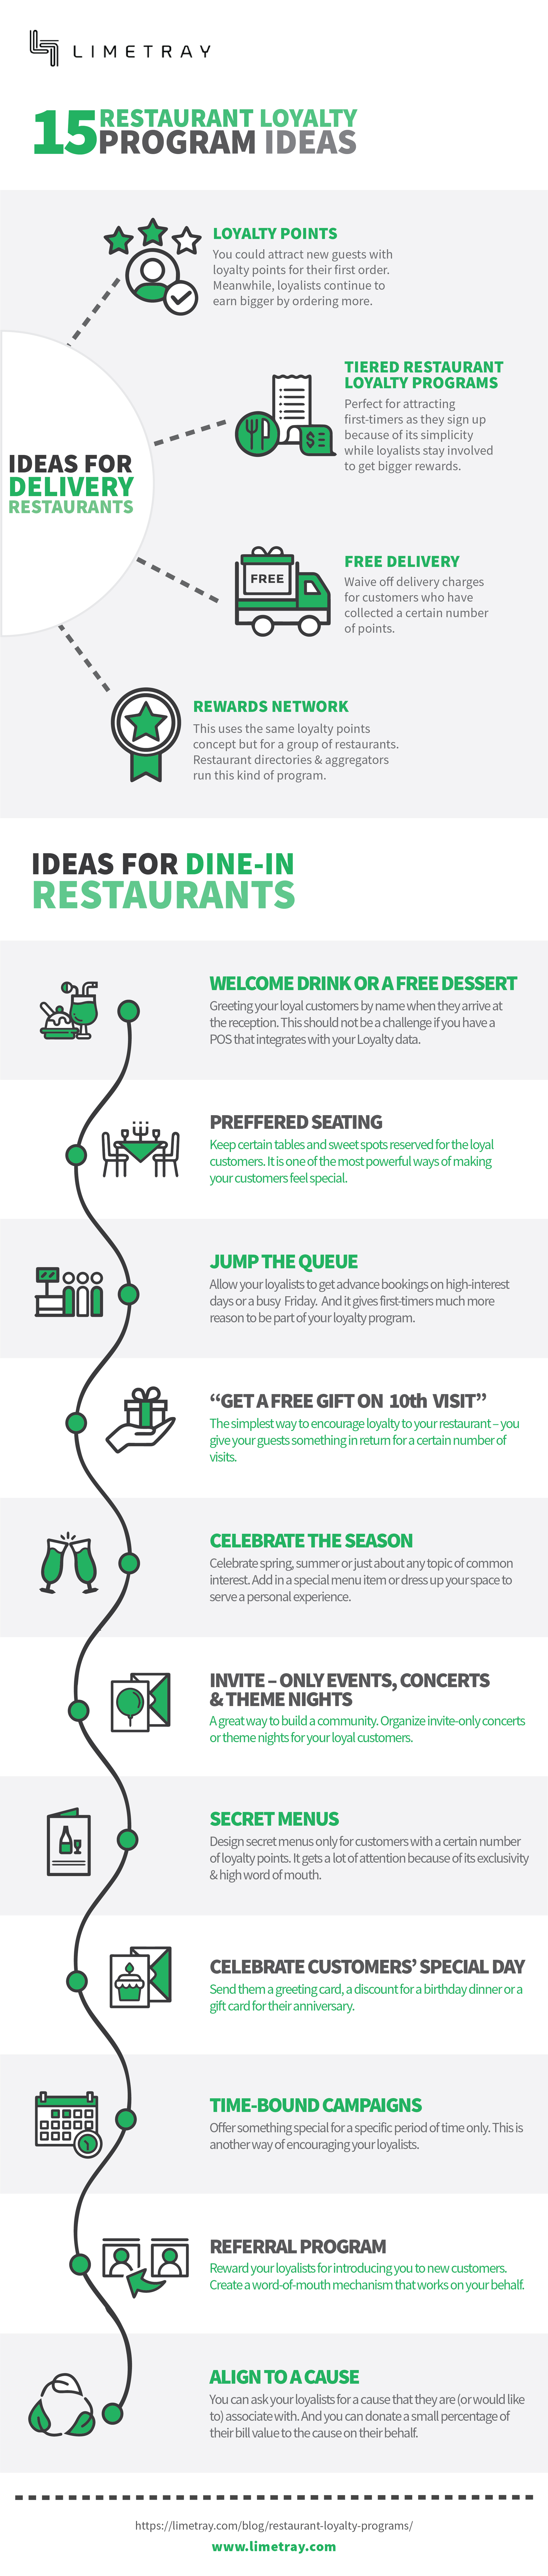 An infographic on 15 Restaurant loyalty program ideas.